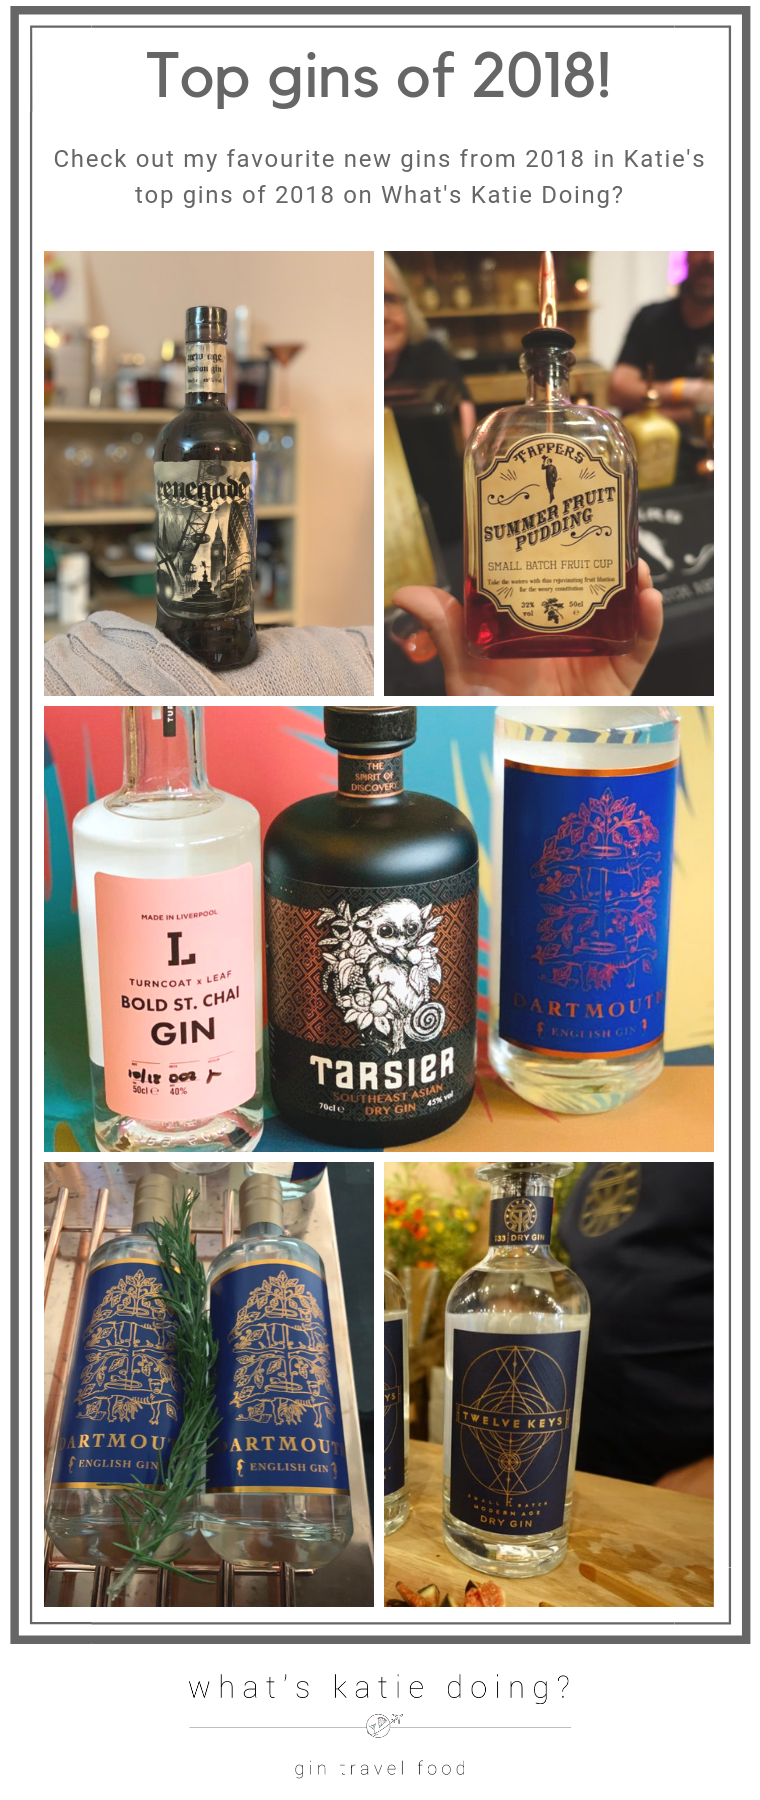 Katie's top new gins of 2018 - the ones to check out and keep an eye on